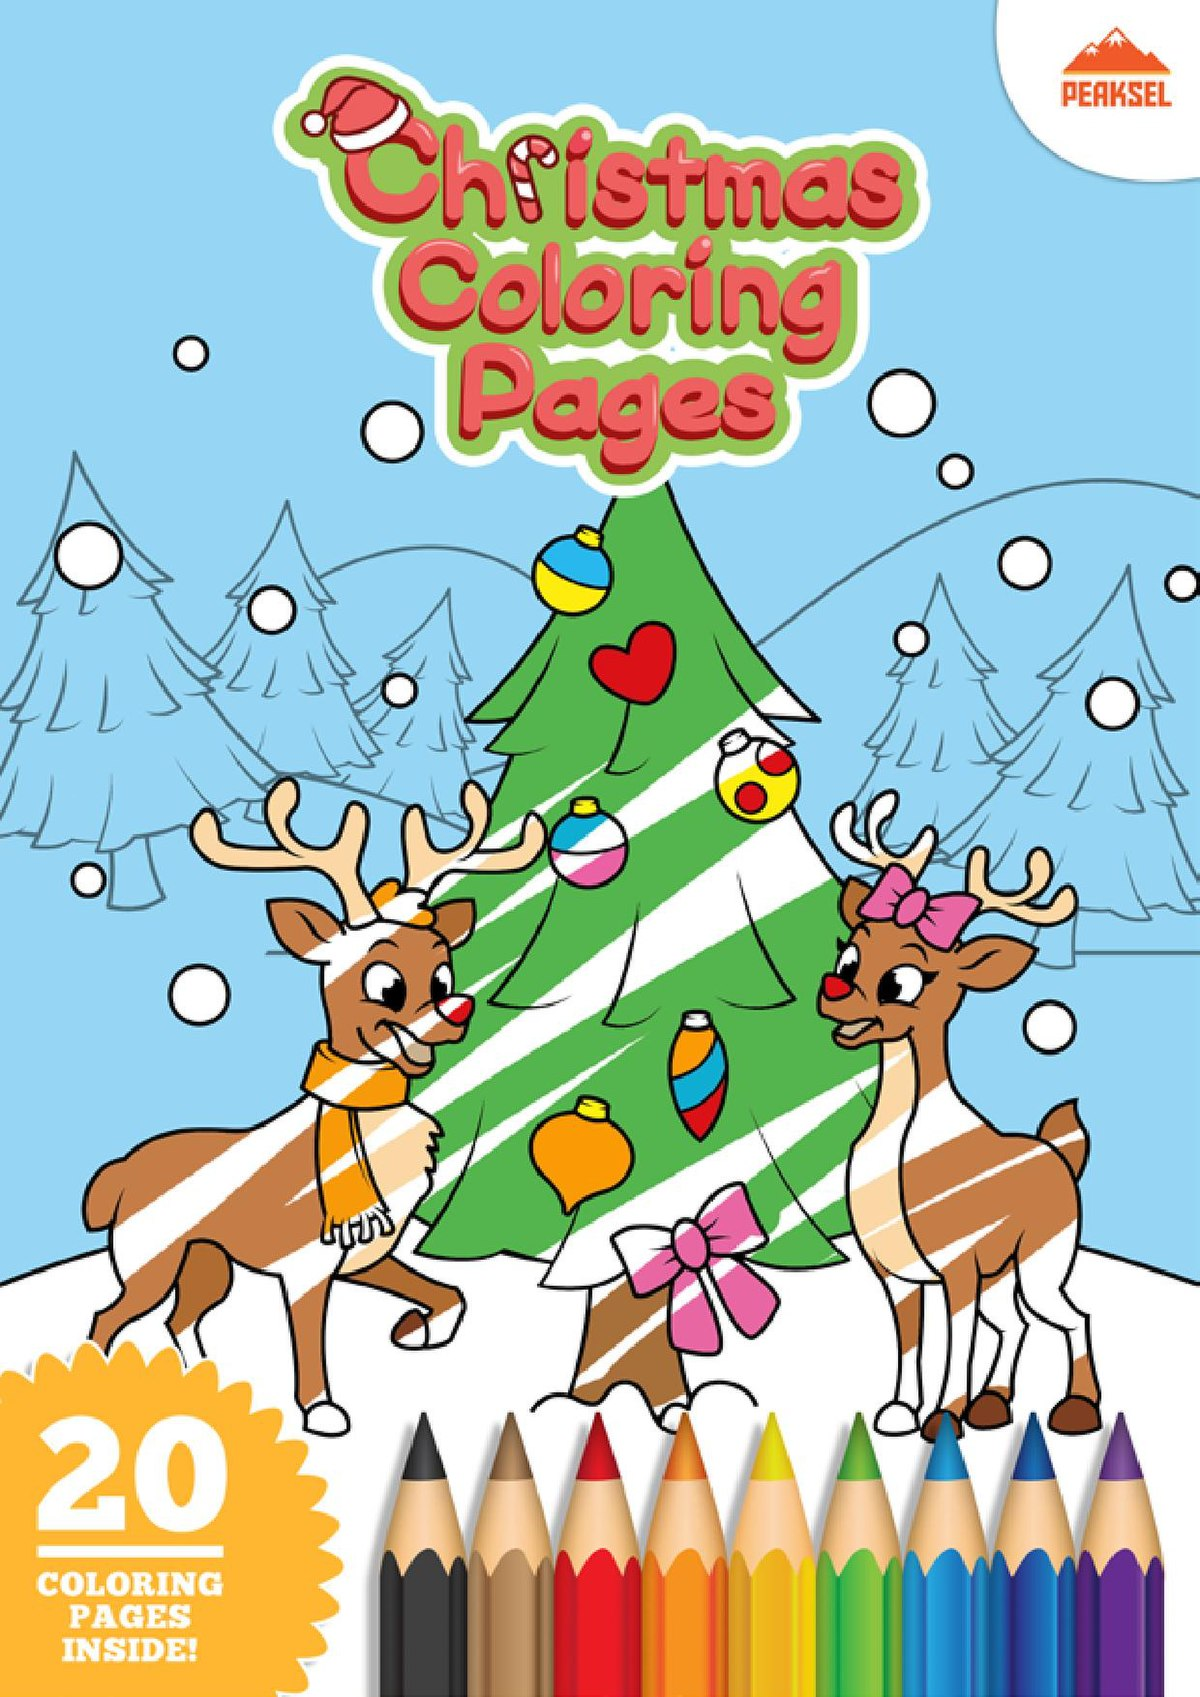 Christmas Coloring Pages - Easy Peasy and Fun | 1697x1200